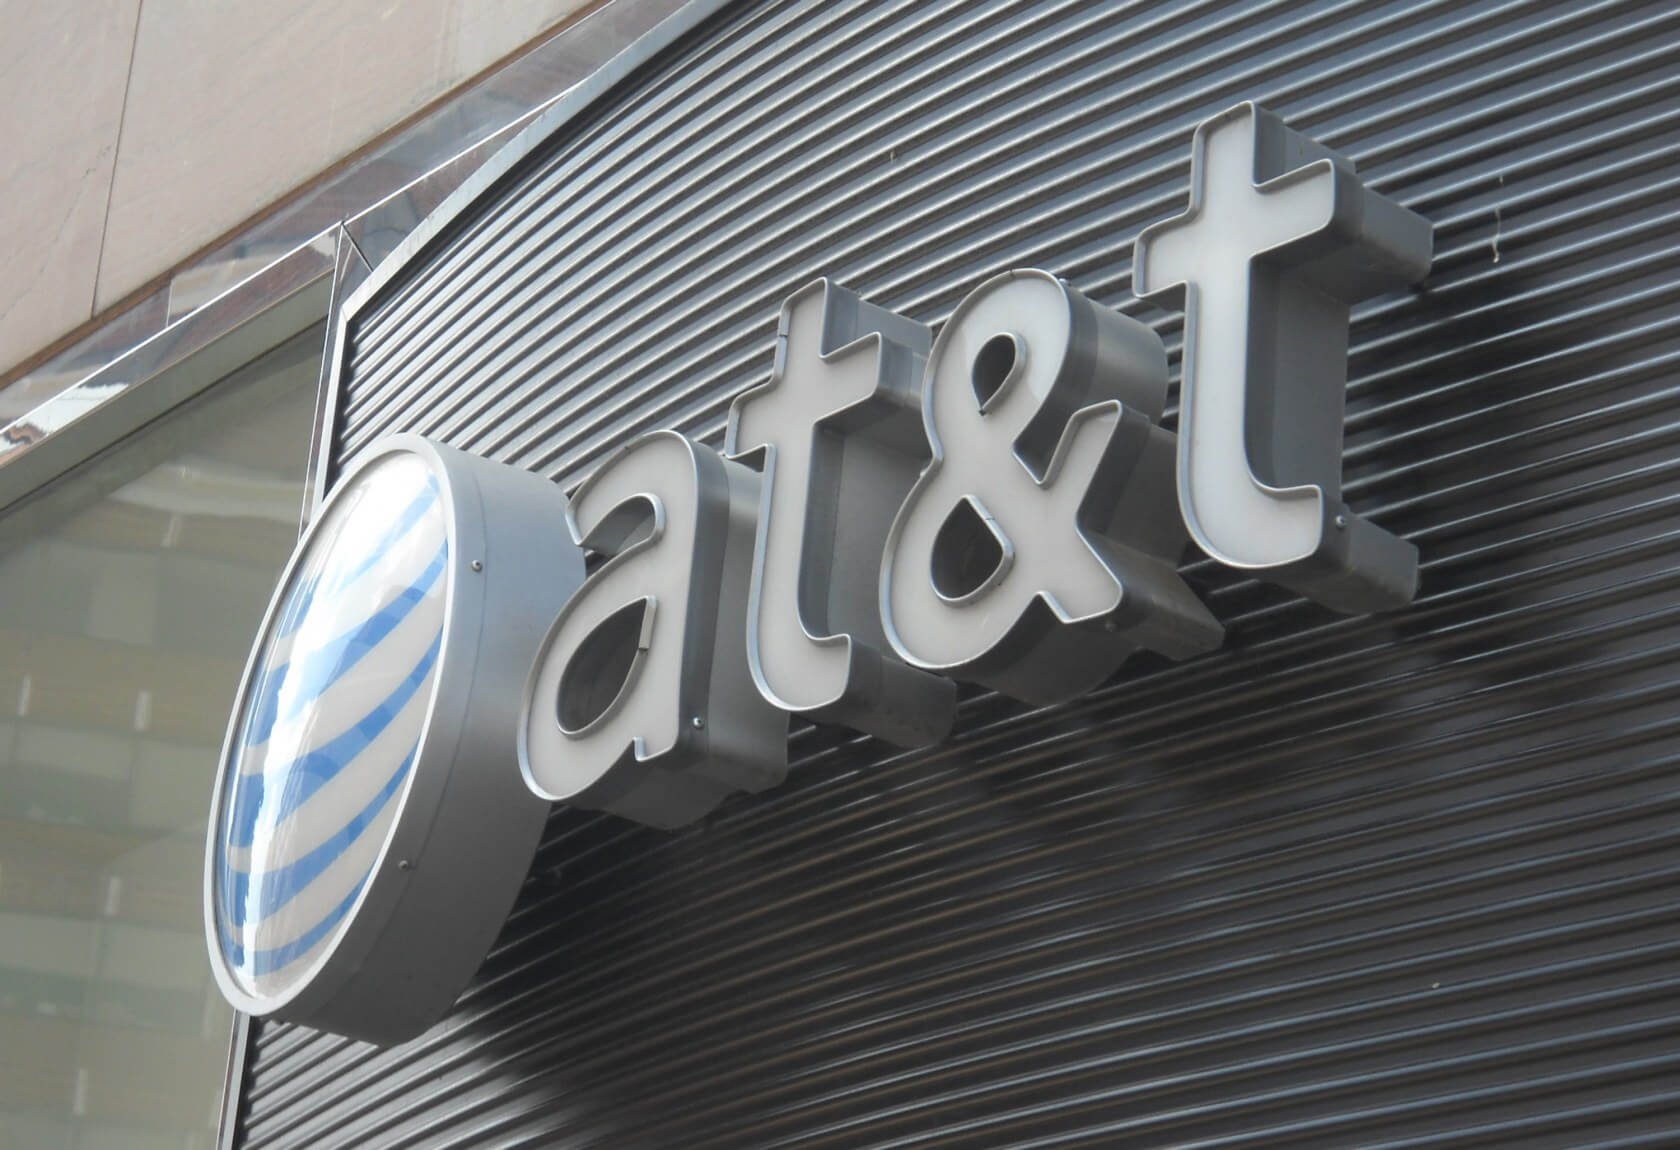 AT&T faces $224 million lawsuit over cryptocurrency theft